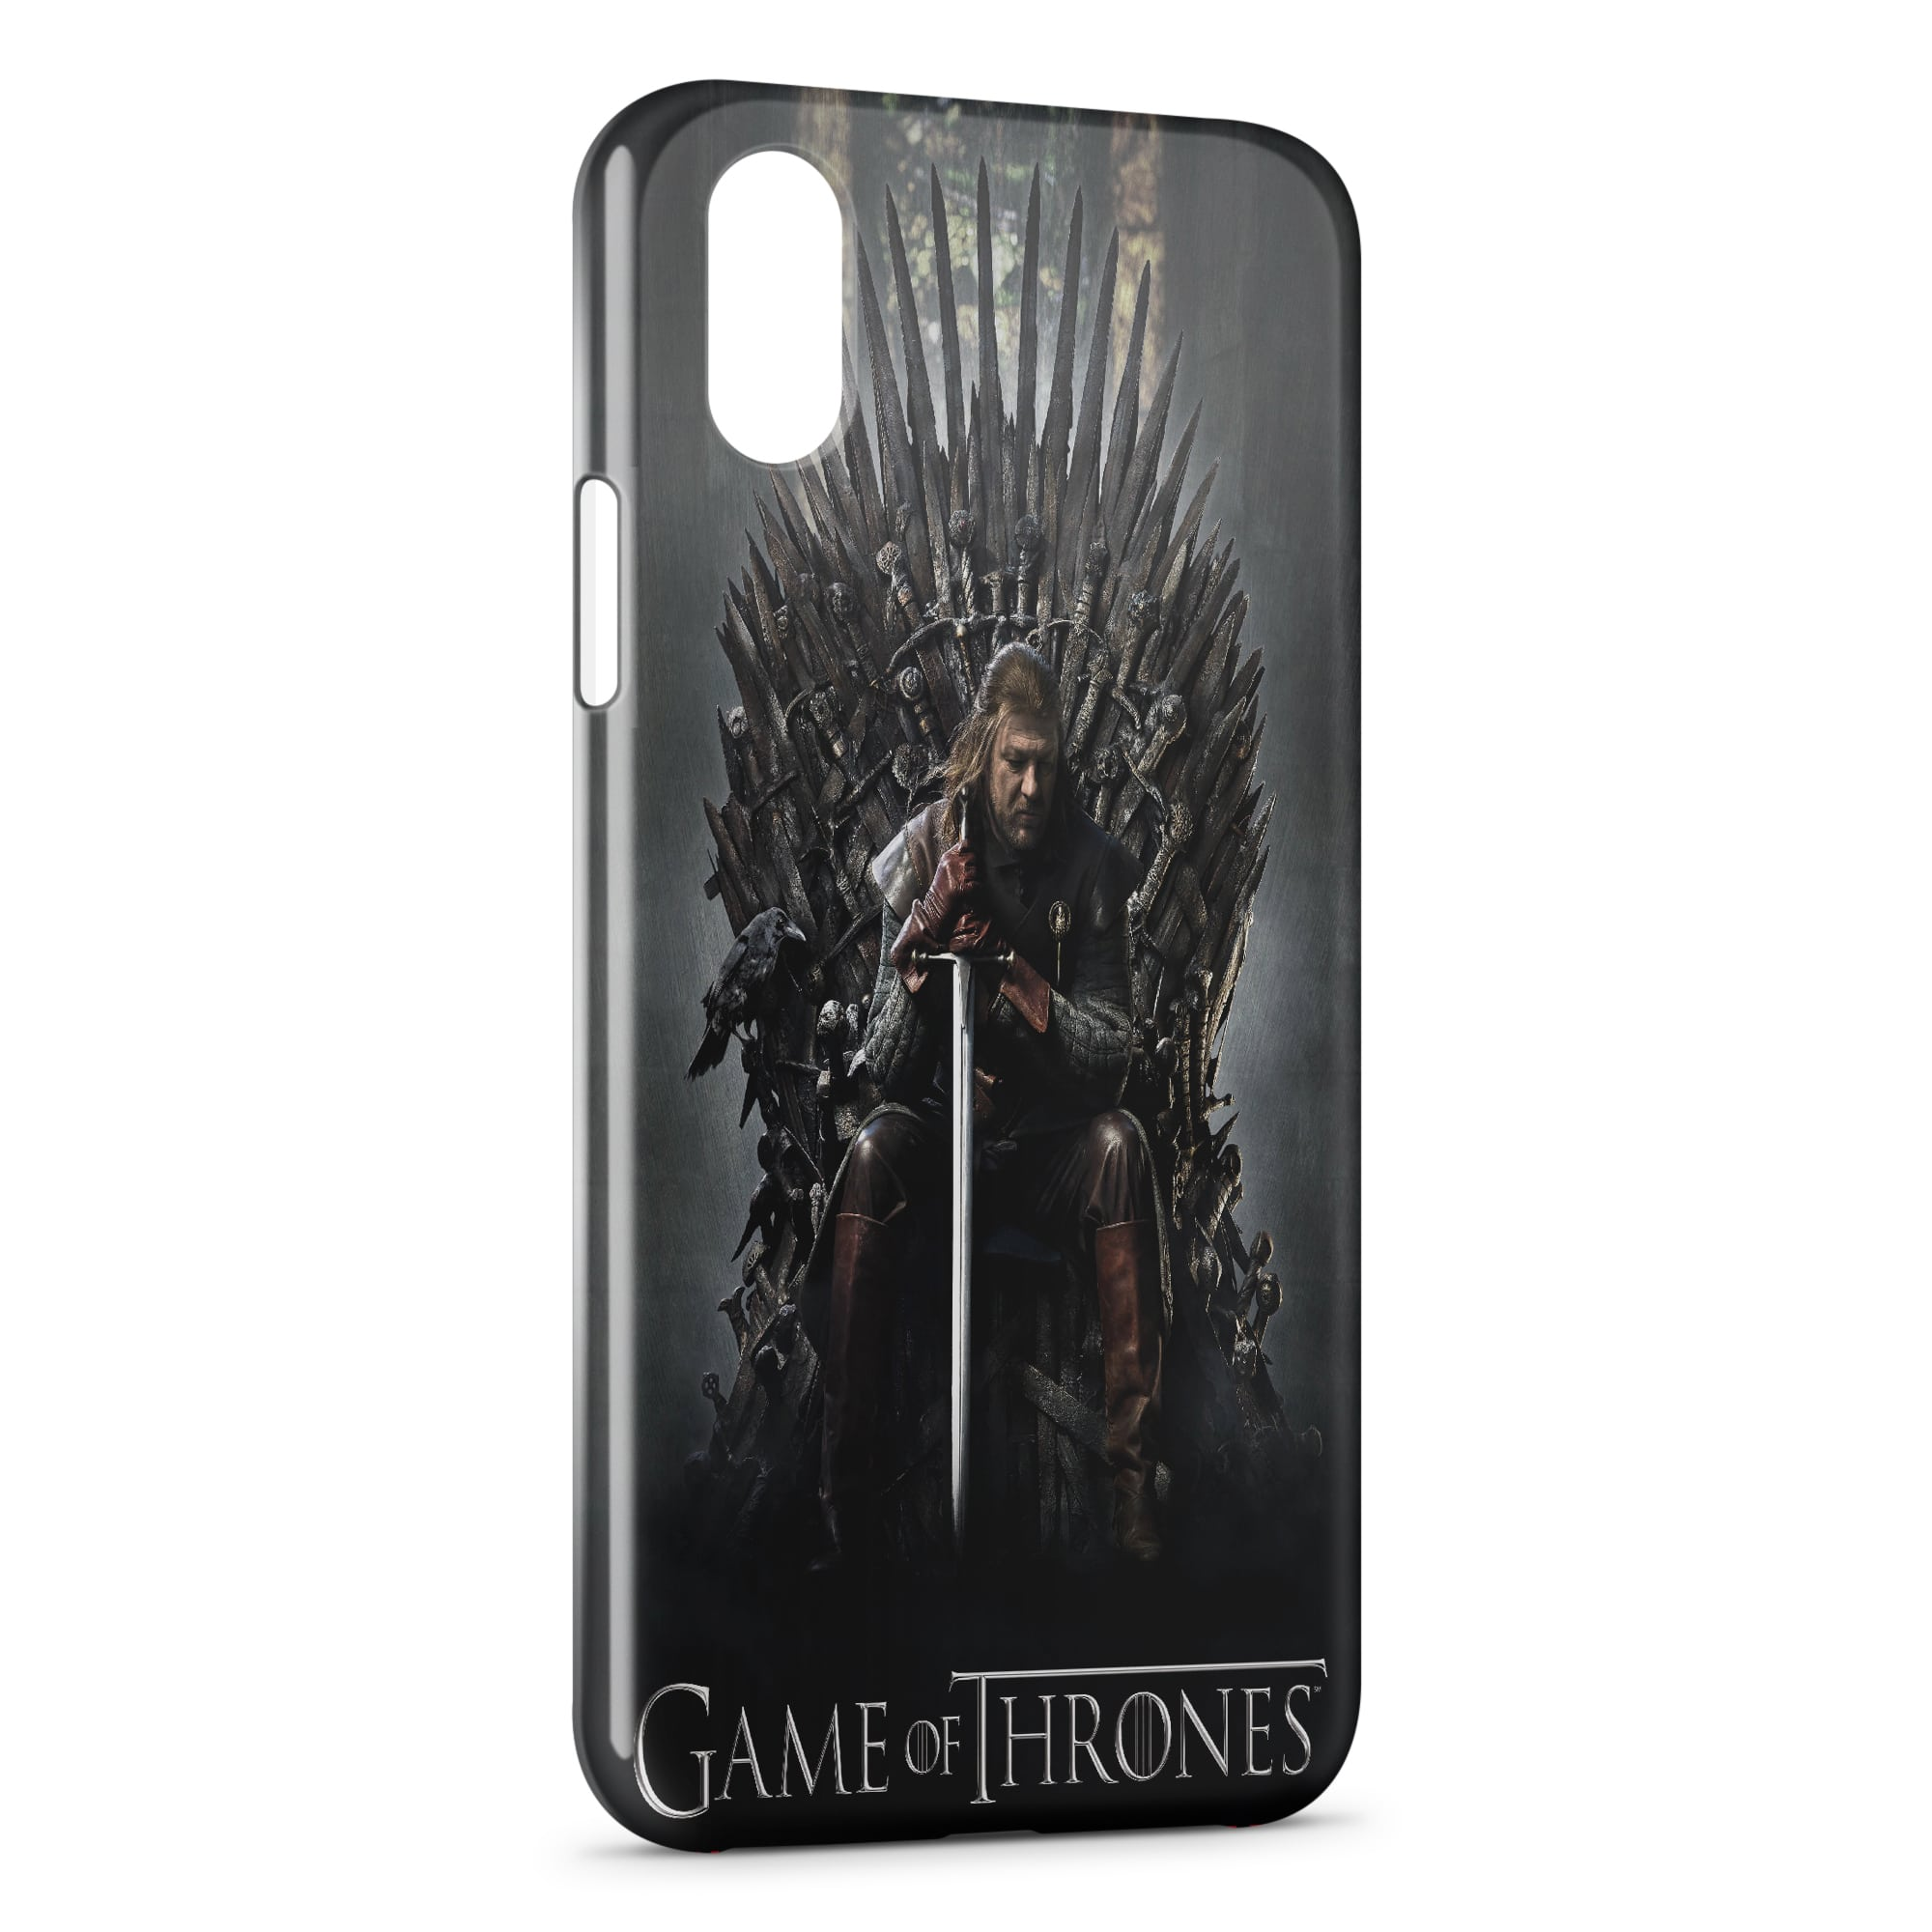 étui Game of Thrones pour iPhone